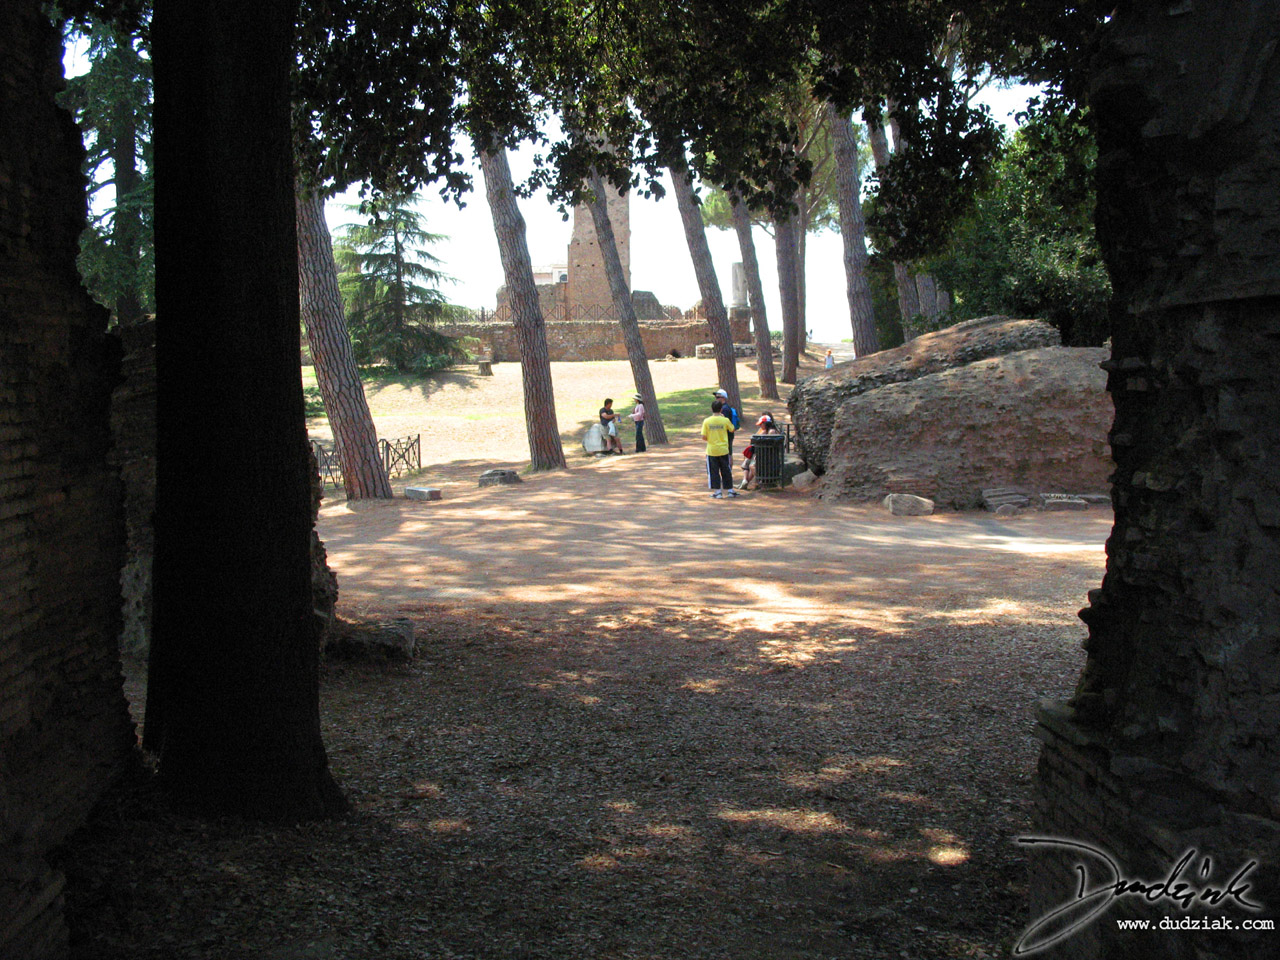 A casual stroll through the paths on the Palentine Hill in Rome, Italy.